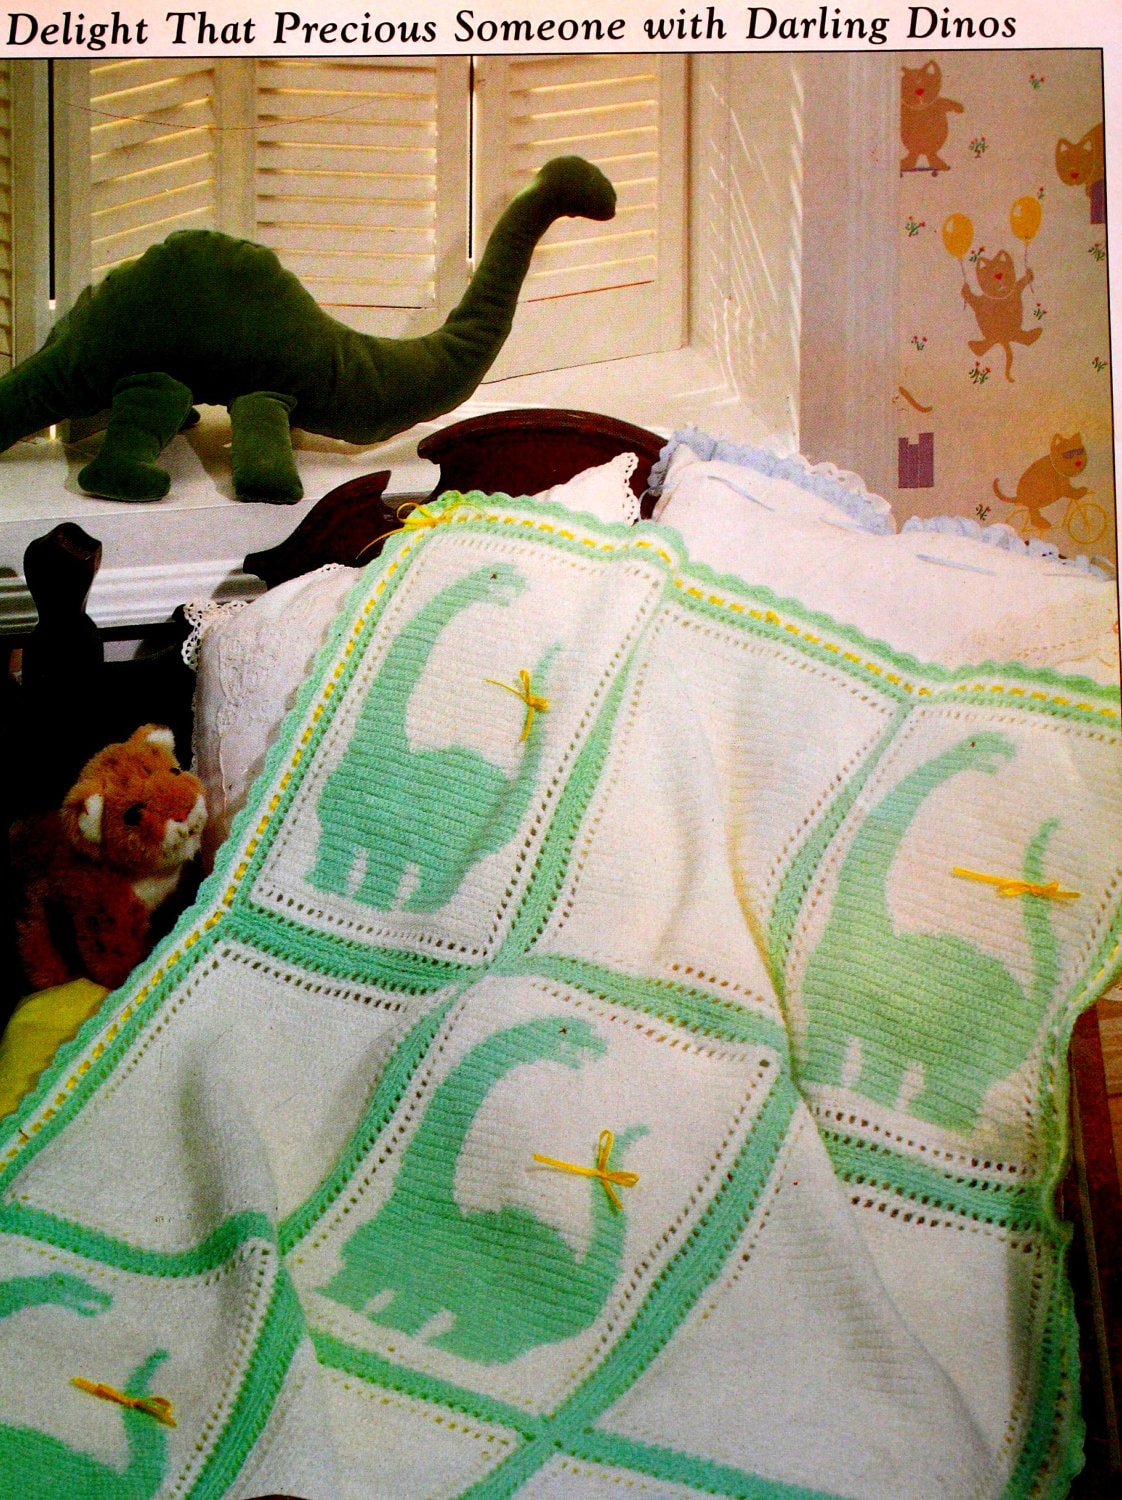 Crochet Dinosaur Afghan Pattern : Crochet Dinosaur Blanket Pattern. Plus added by ...